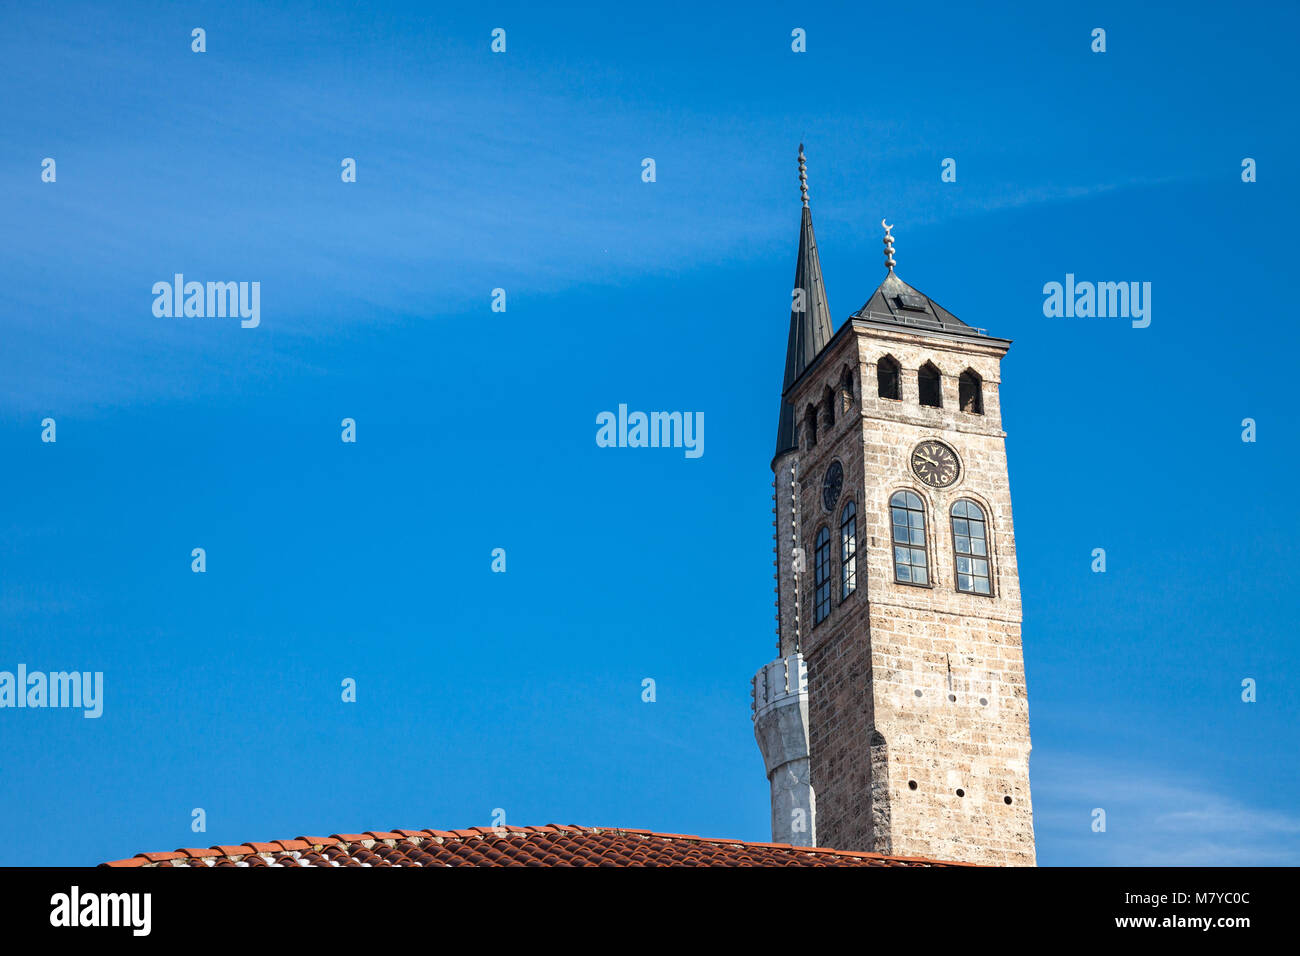 Minaret of the Gazi Husrev begova Mosque next to the clocktower of Sarajevo bazaar, in Bosnia and Herzegovina   Stock Photo